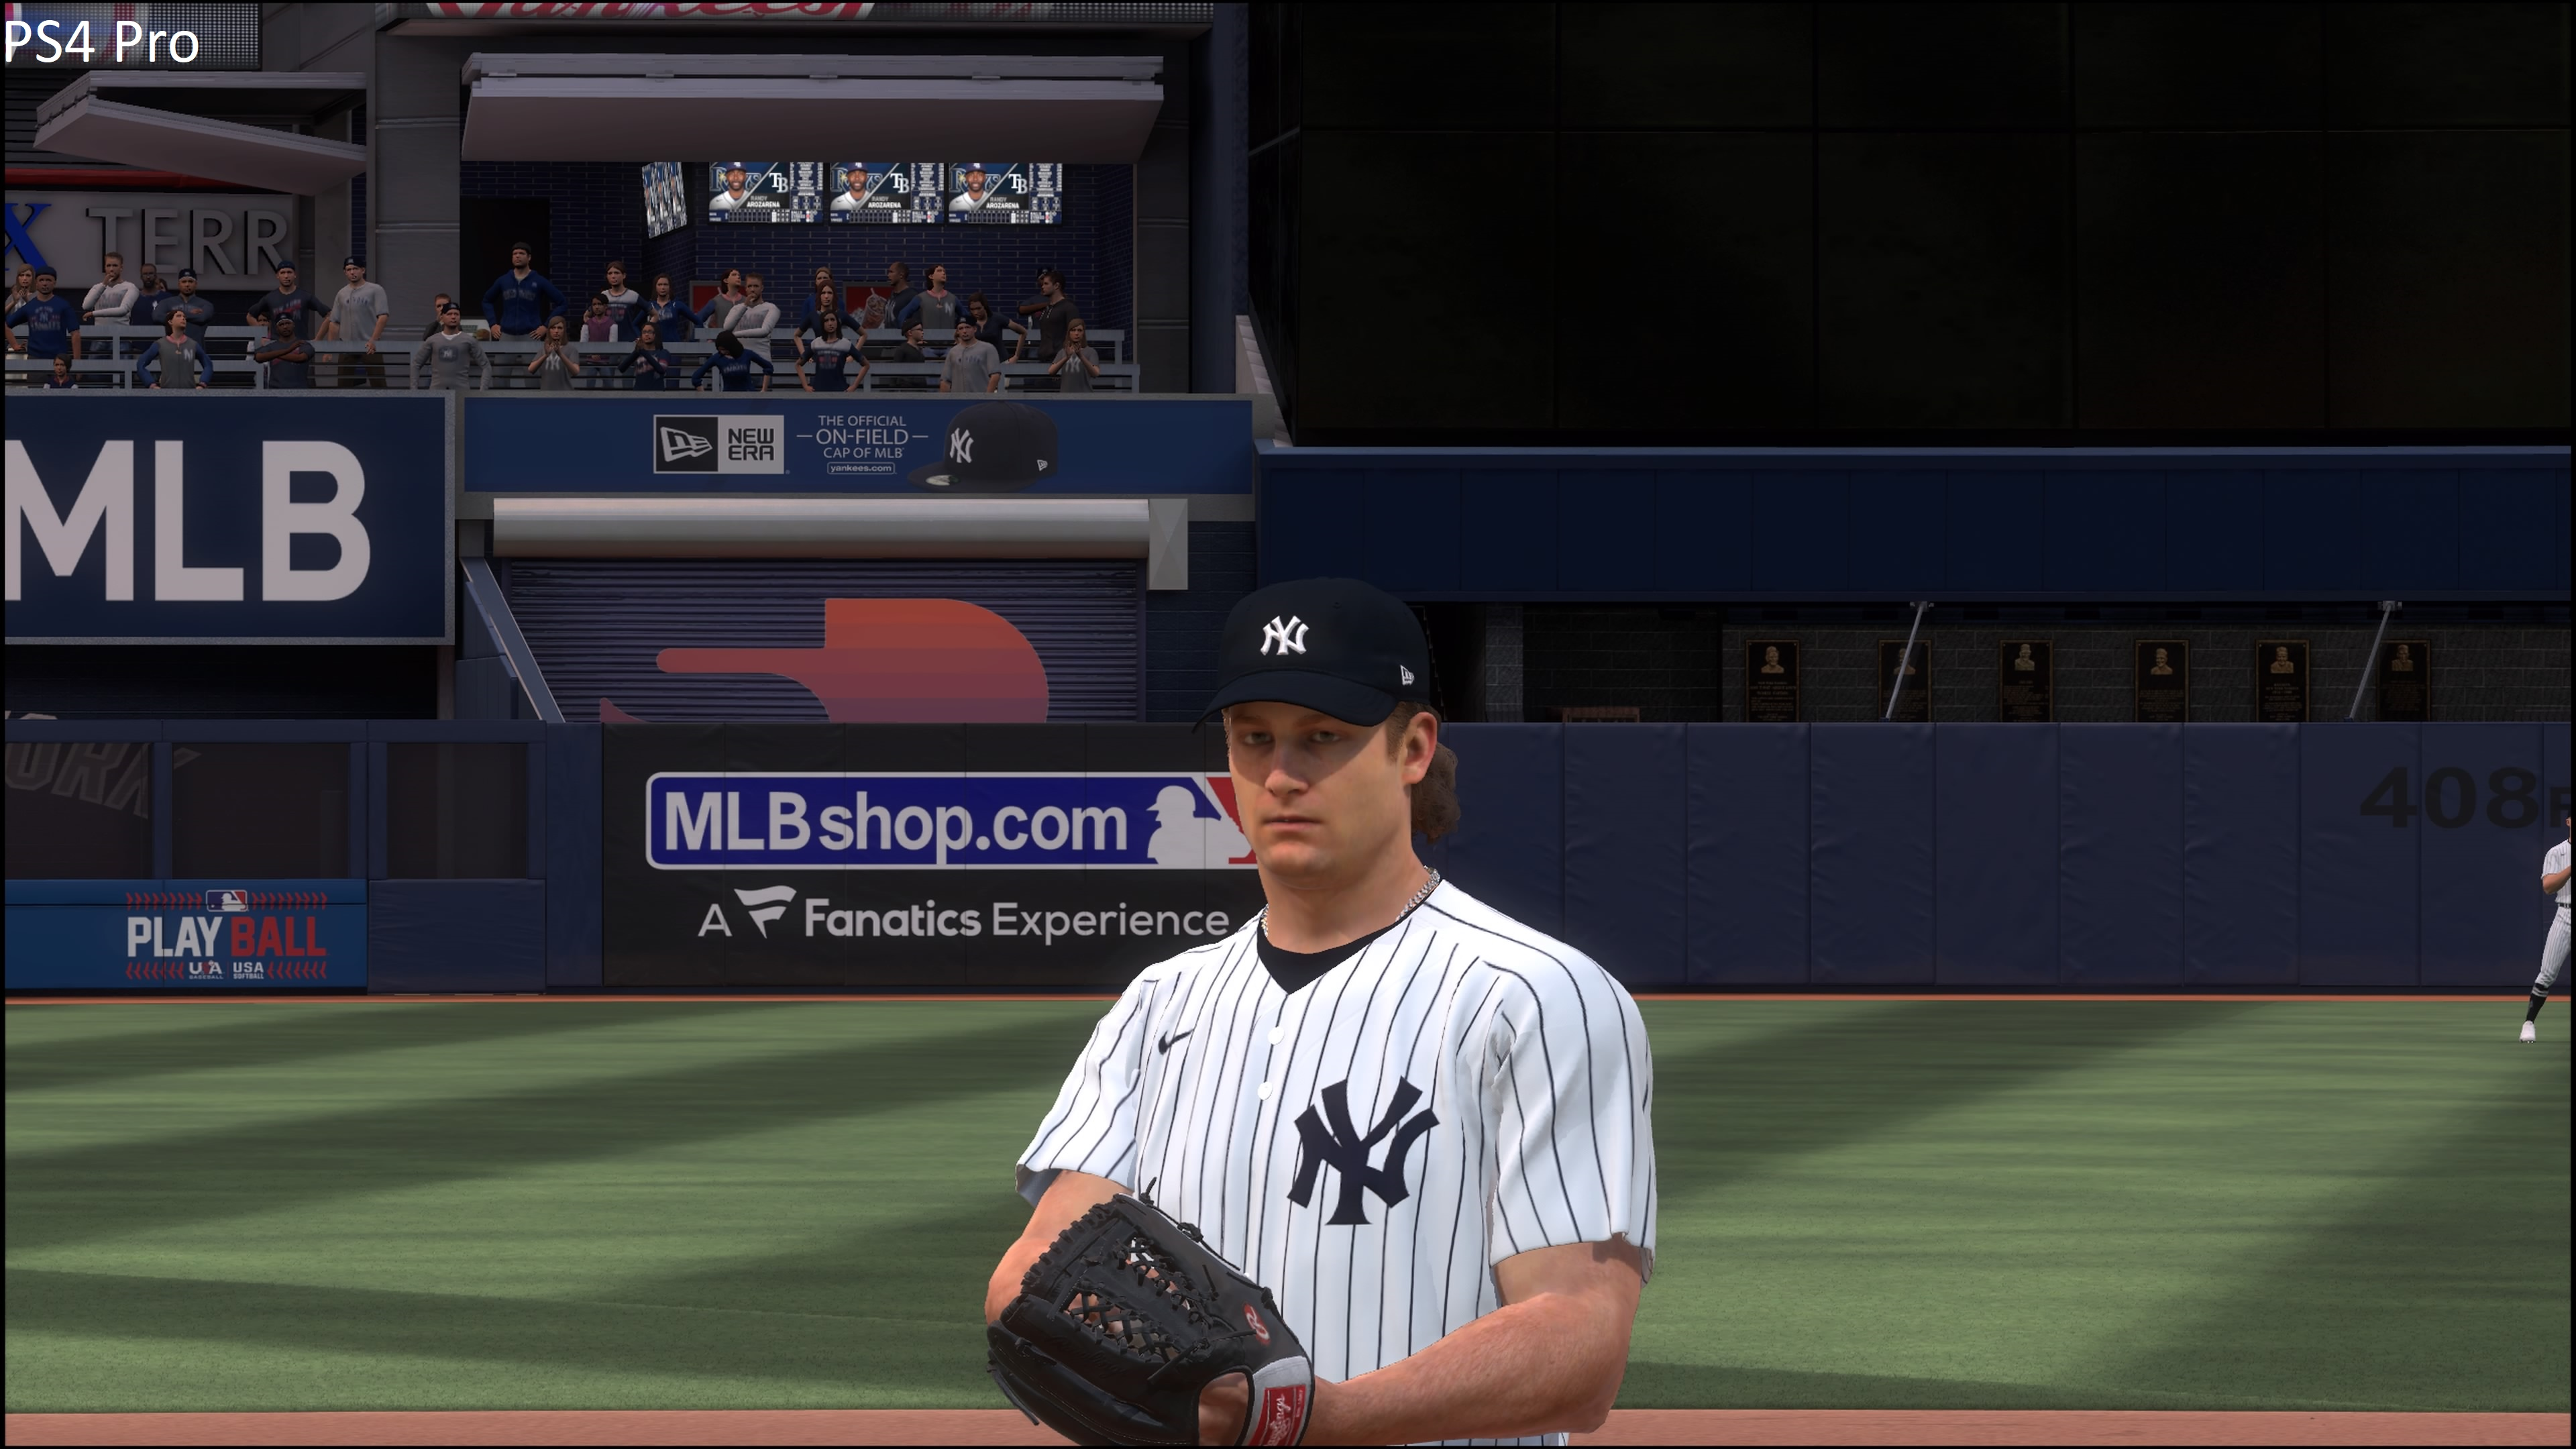 PS4 Pro Cole MLB(R) The Show(TM) 21